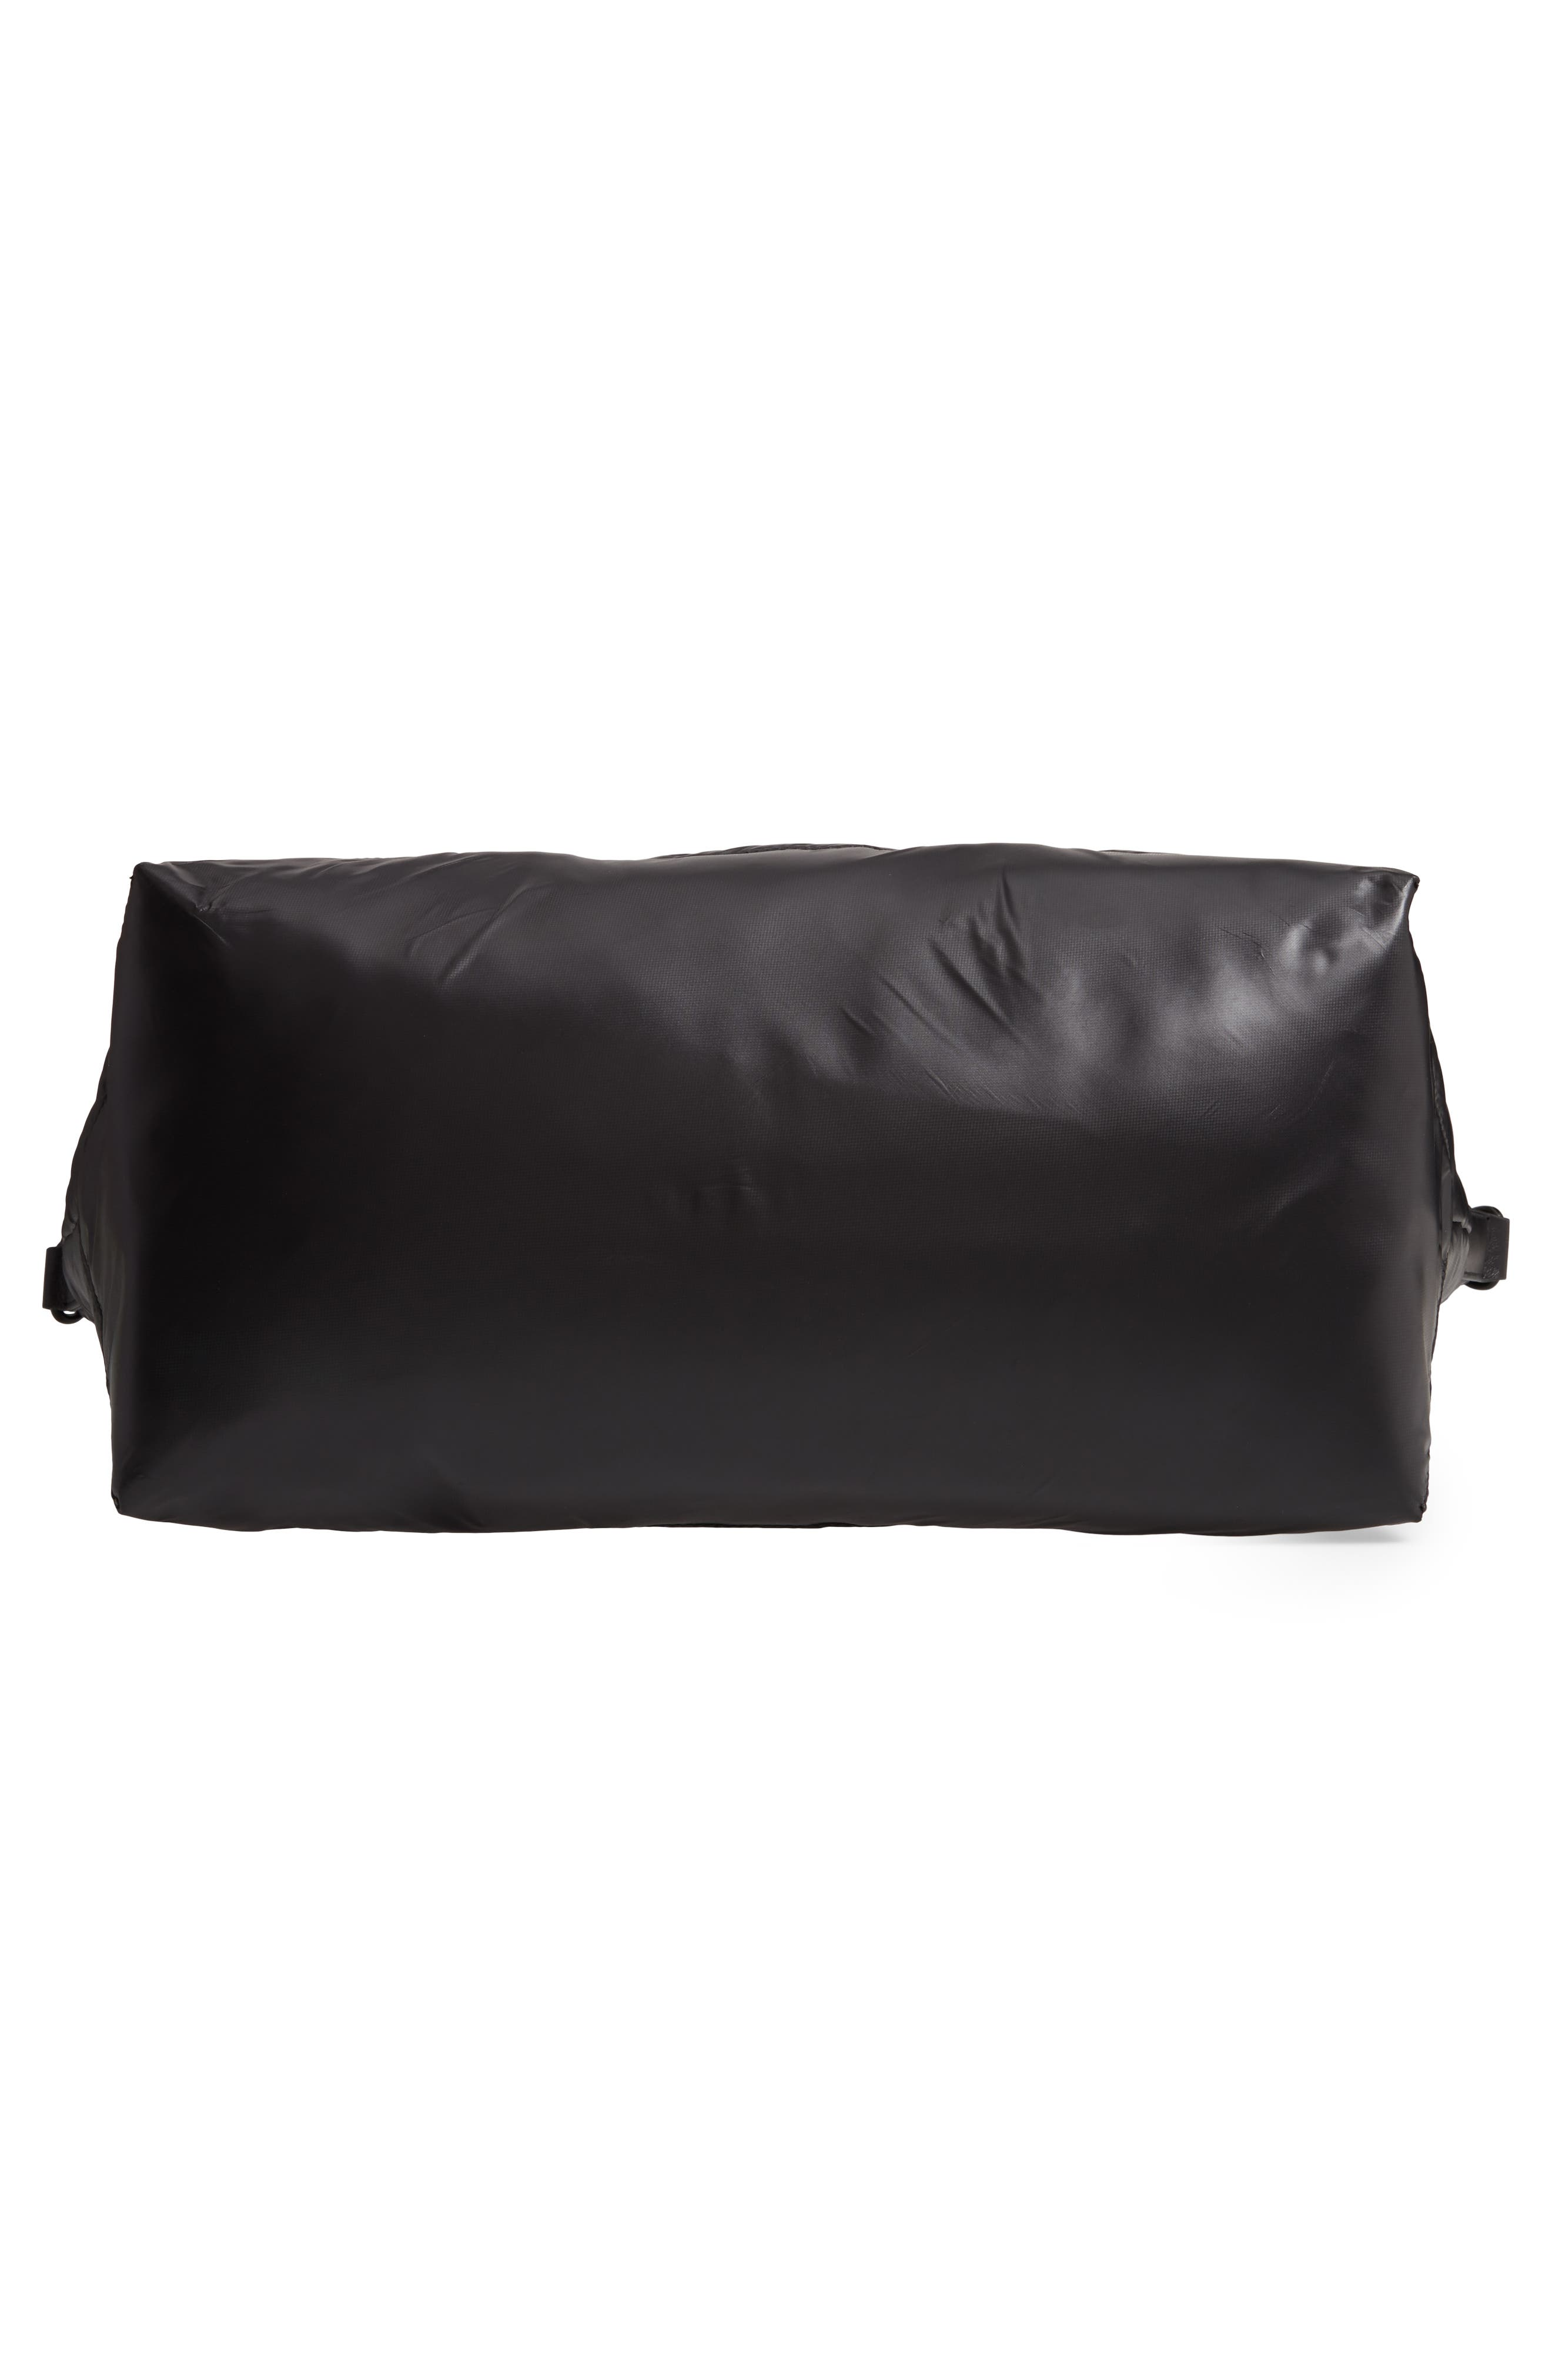 Puffy Nylon Duffel Bag,                             Alternate thumbnail 6, color,                             001